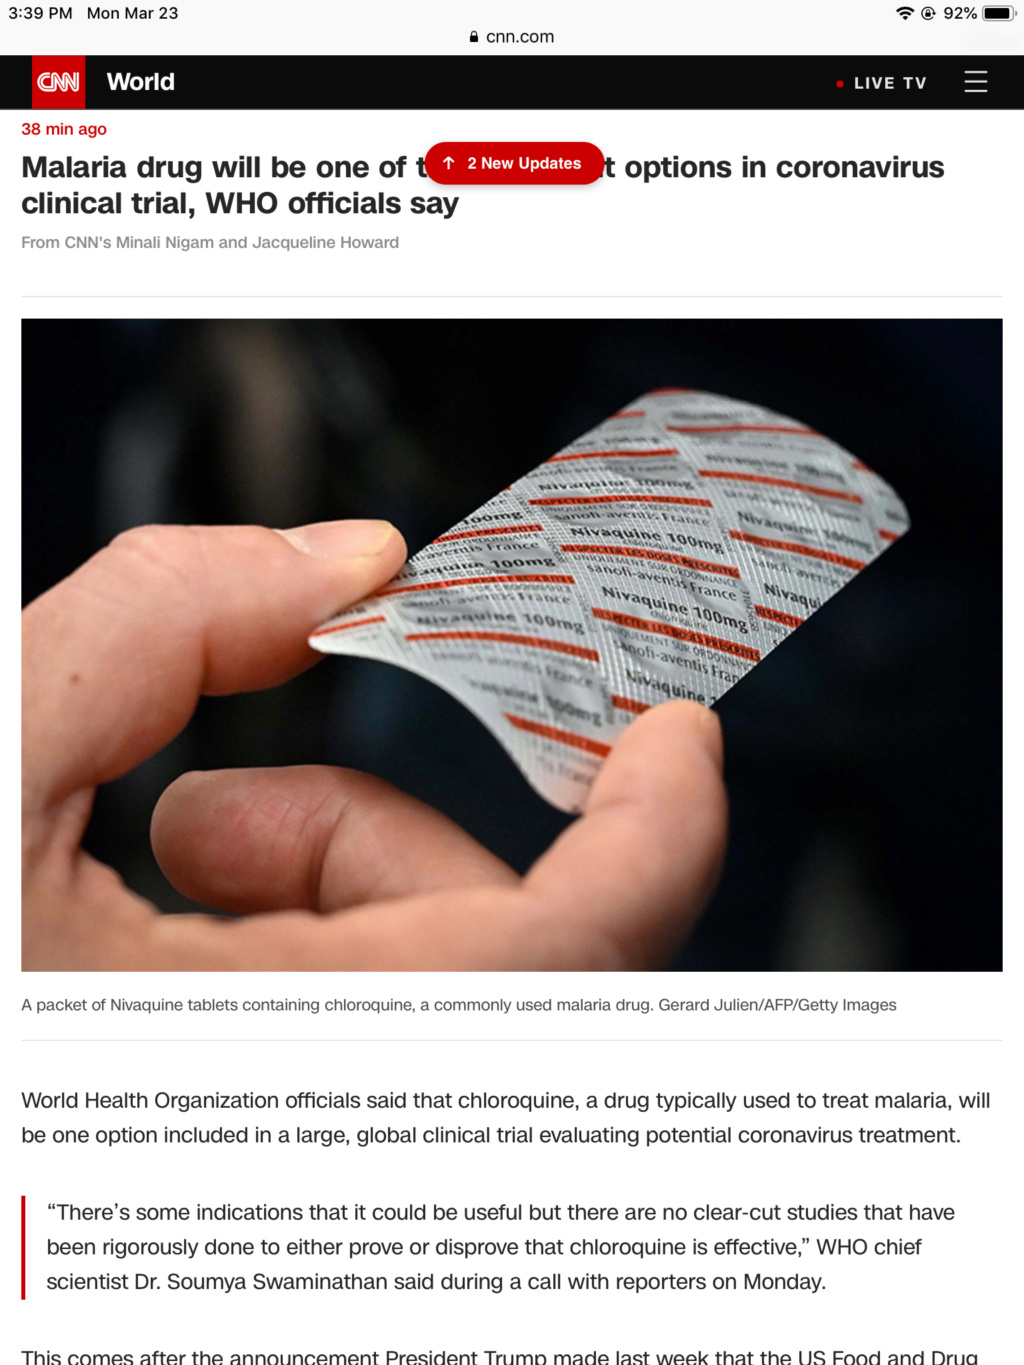 WHO said: Malaria drug will be one of the treatment options 7d4a4f10